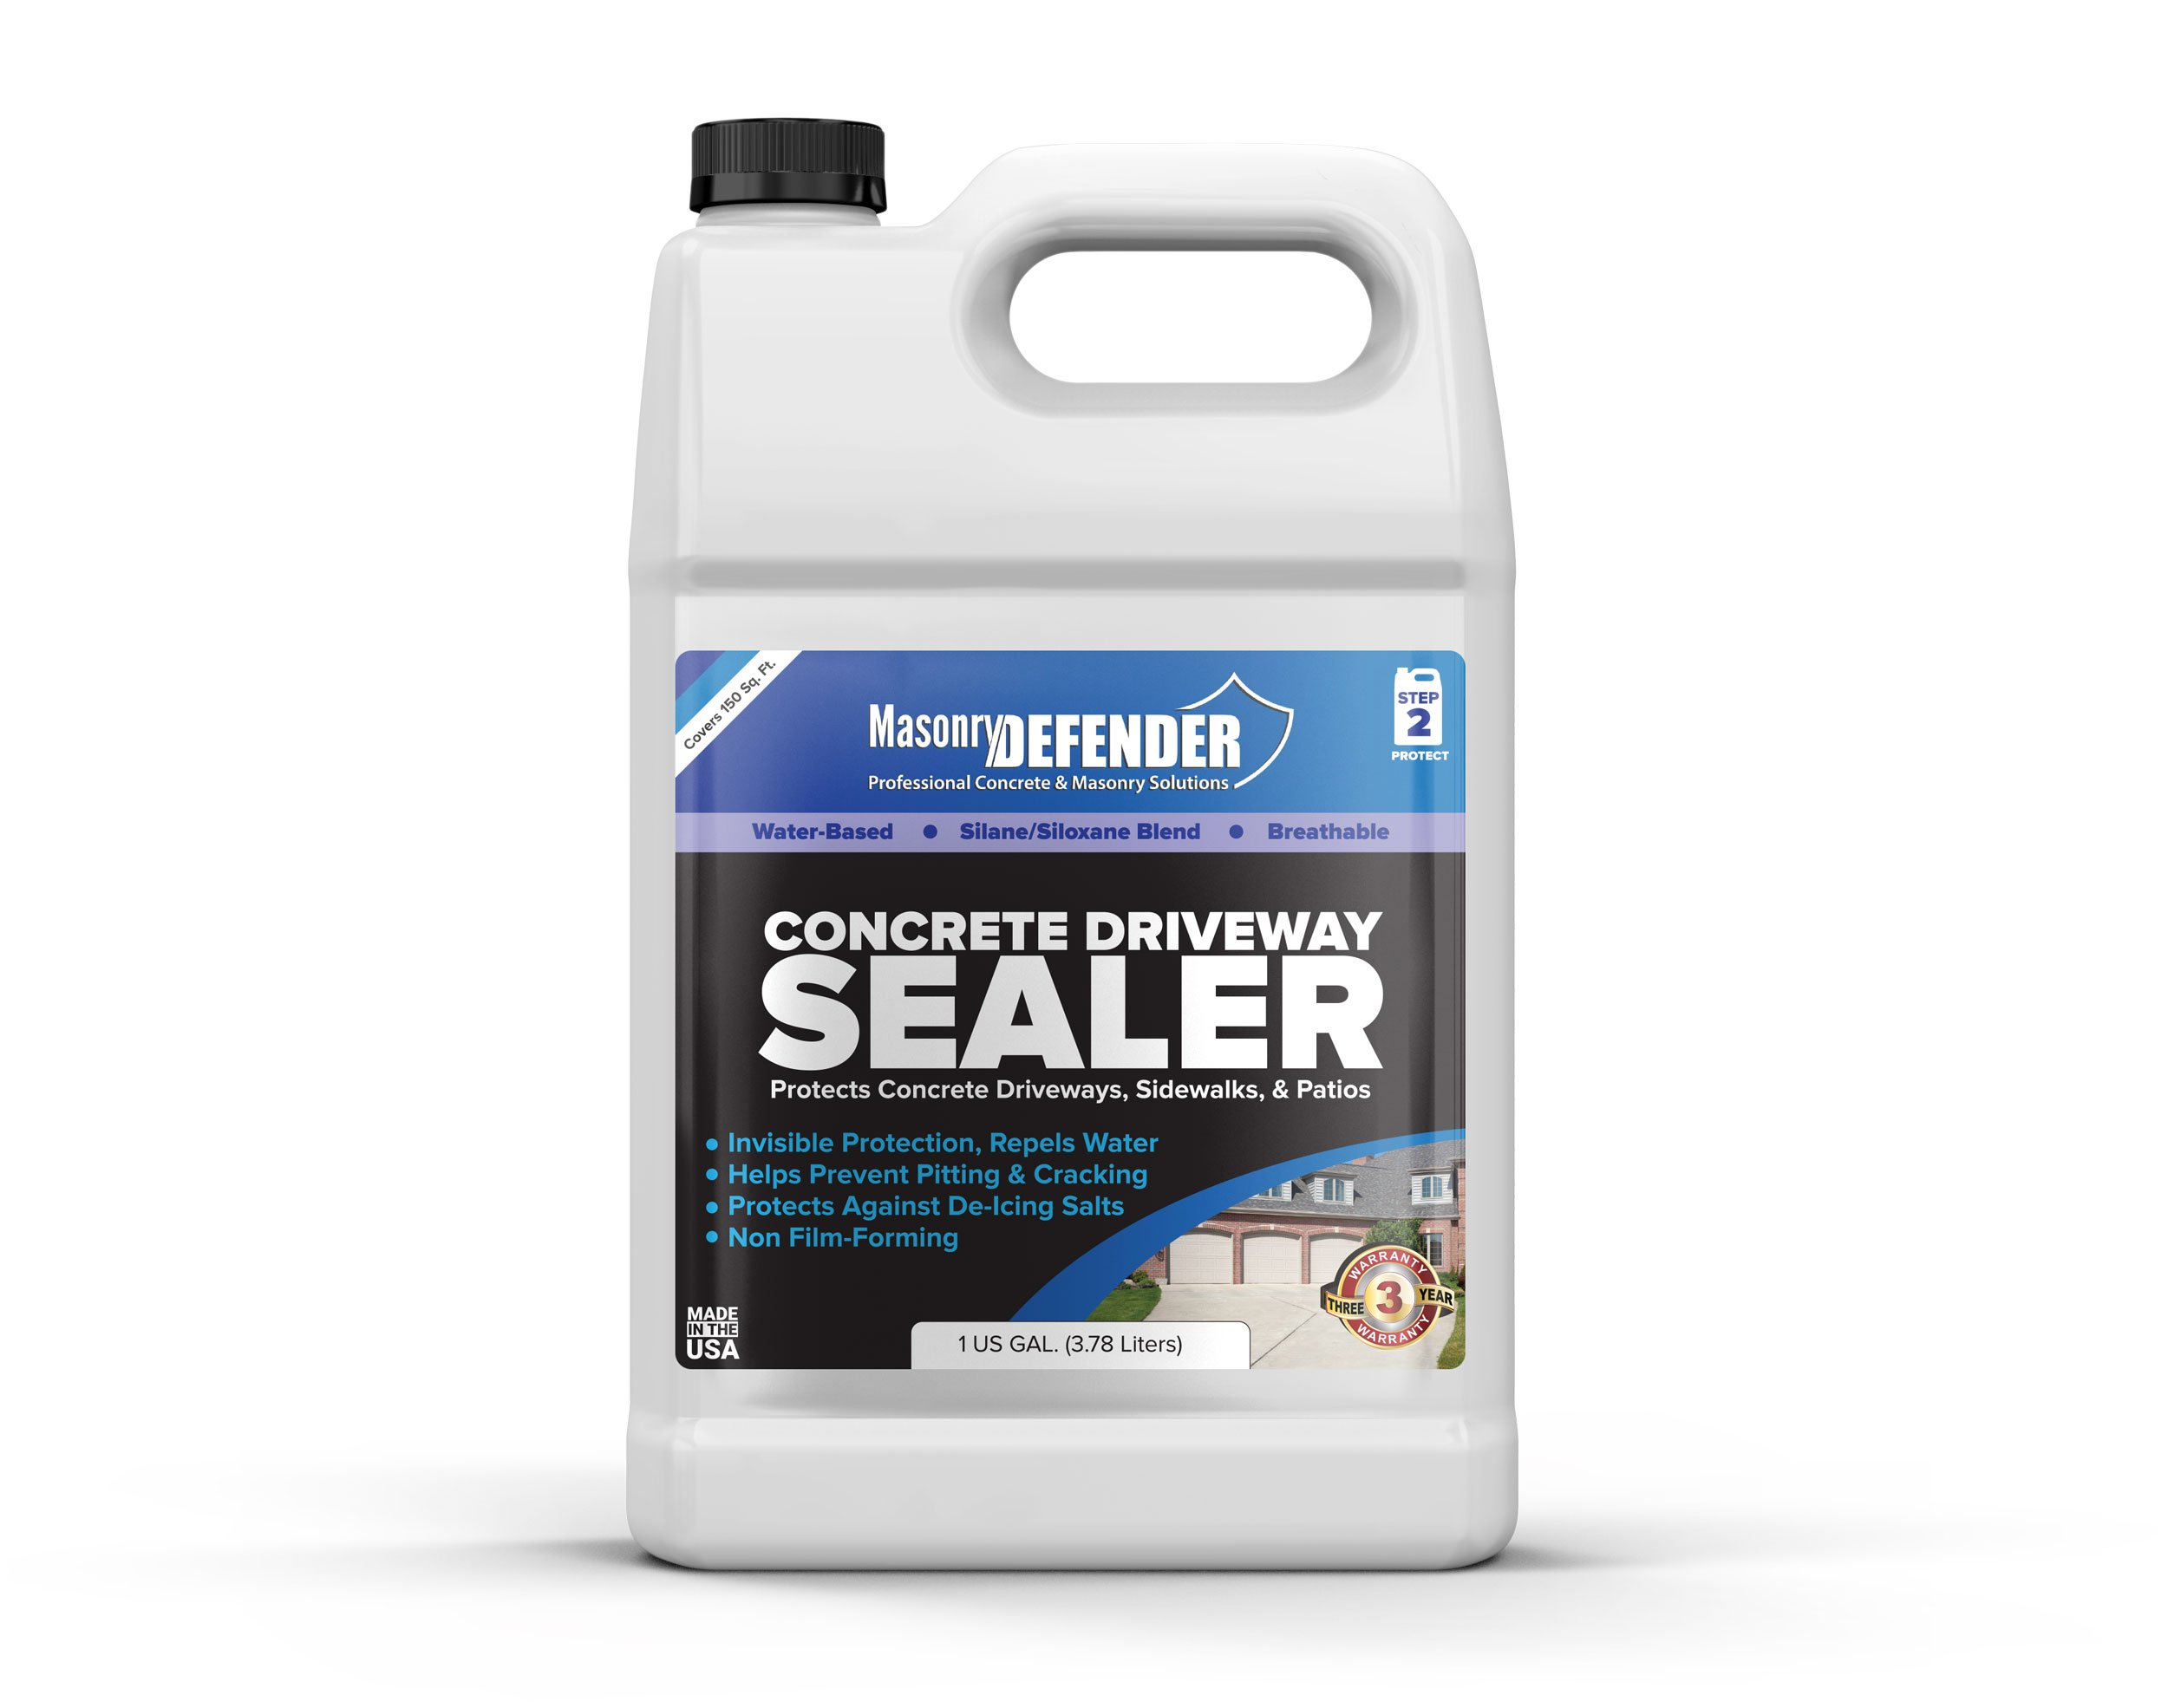 MasonryDefender 1 Gallon Penetrating Concrete Sealer for Driveways, Patios, Sidewalks - Clear Water-Based Silane Siloxane Sealer Water Repellent